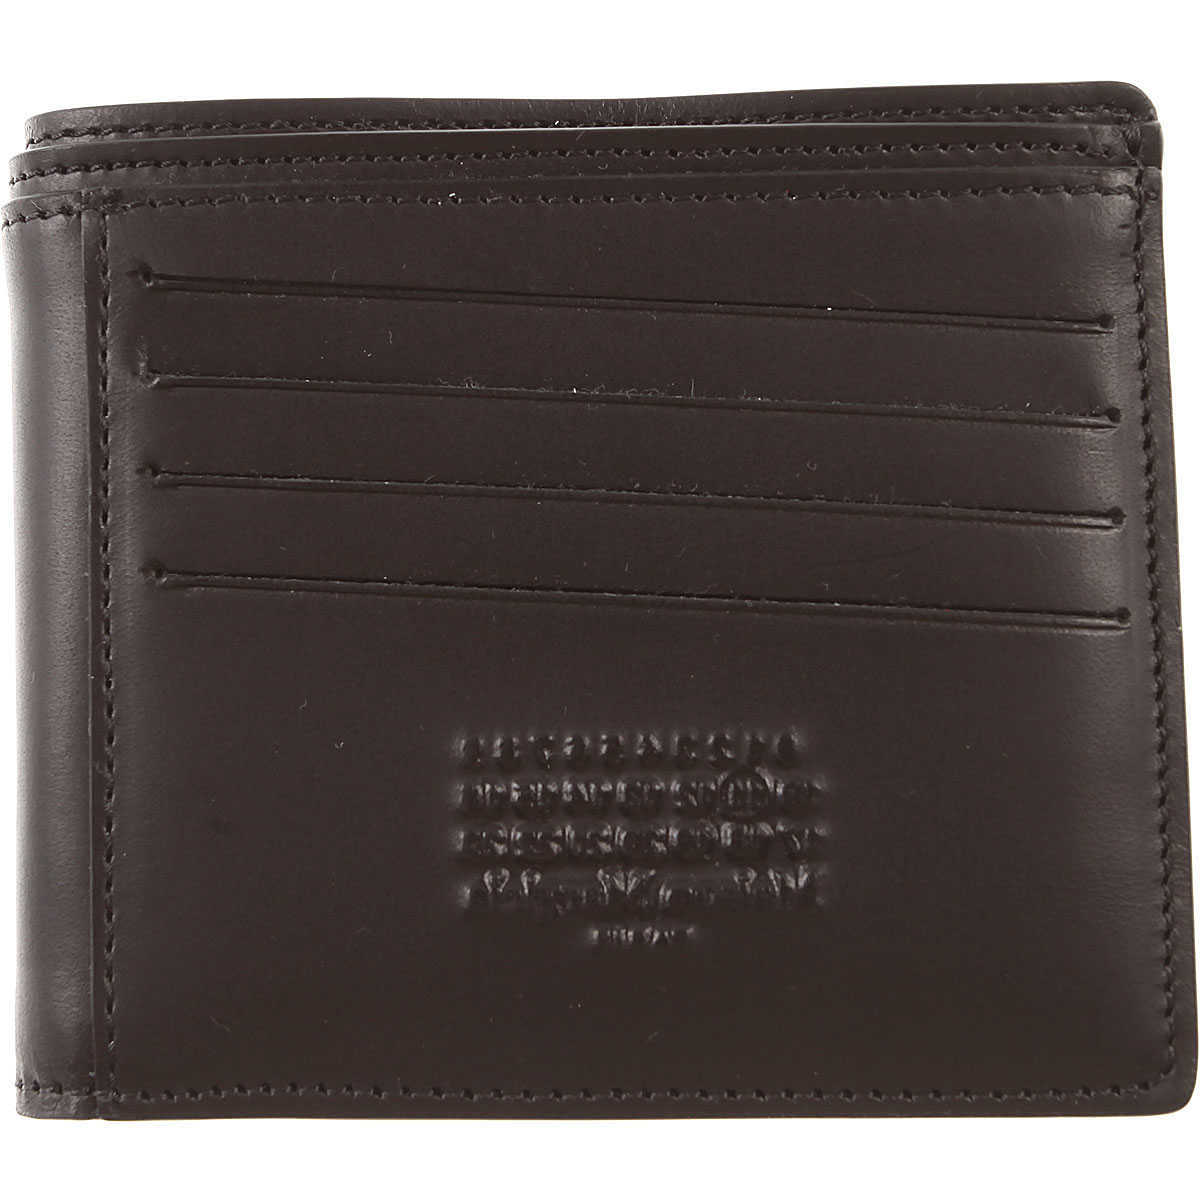 Maison Martin Margiela Wallet for Men On Sale Black DK - GOOFASH - Mens WALLETS